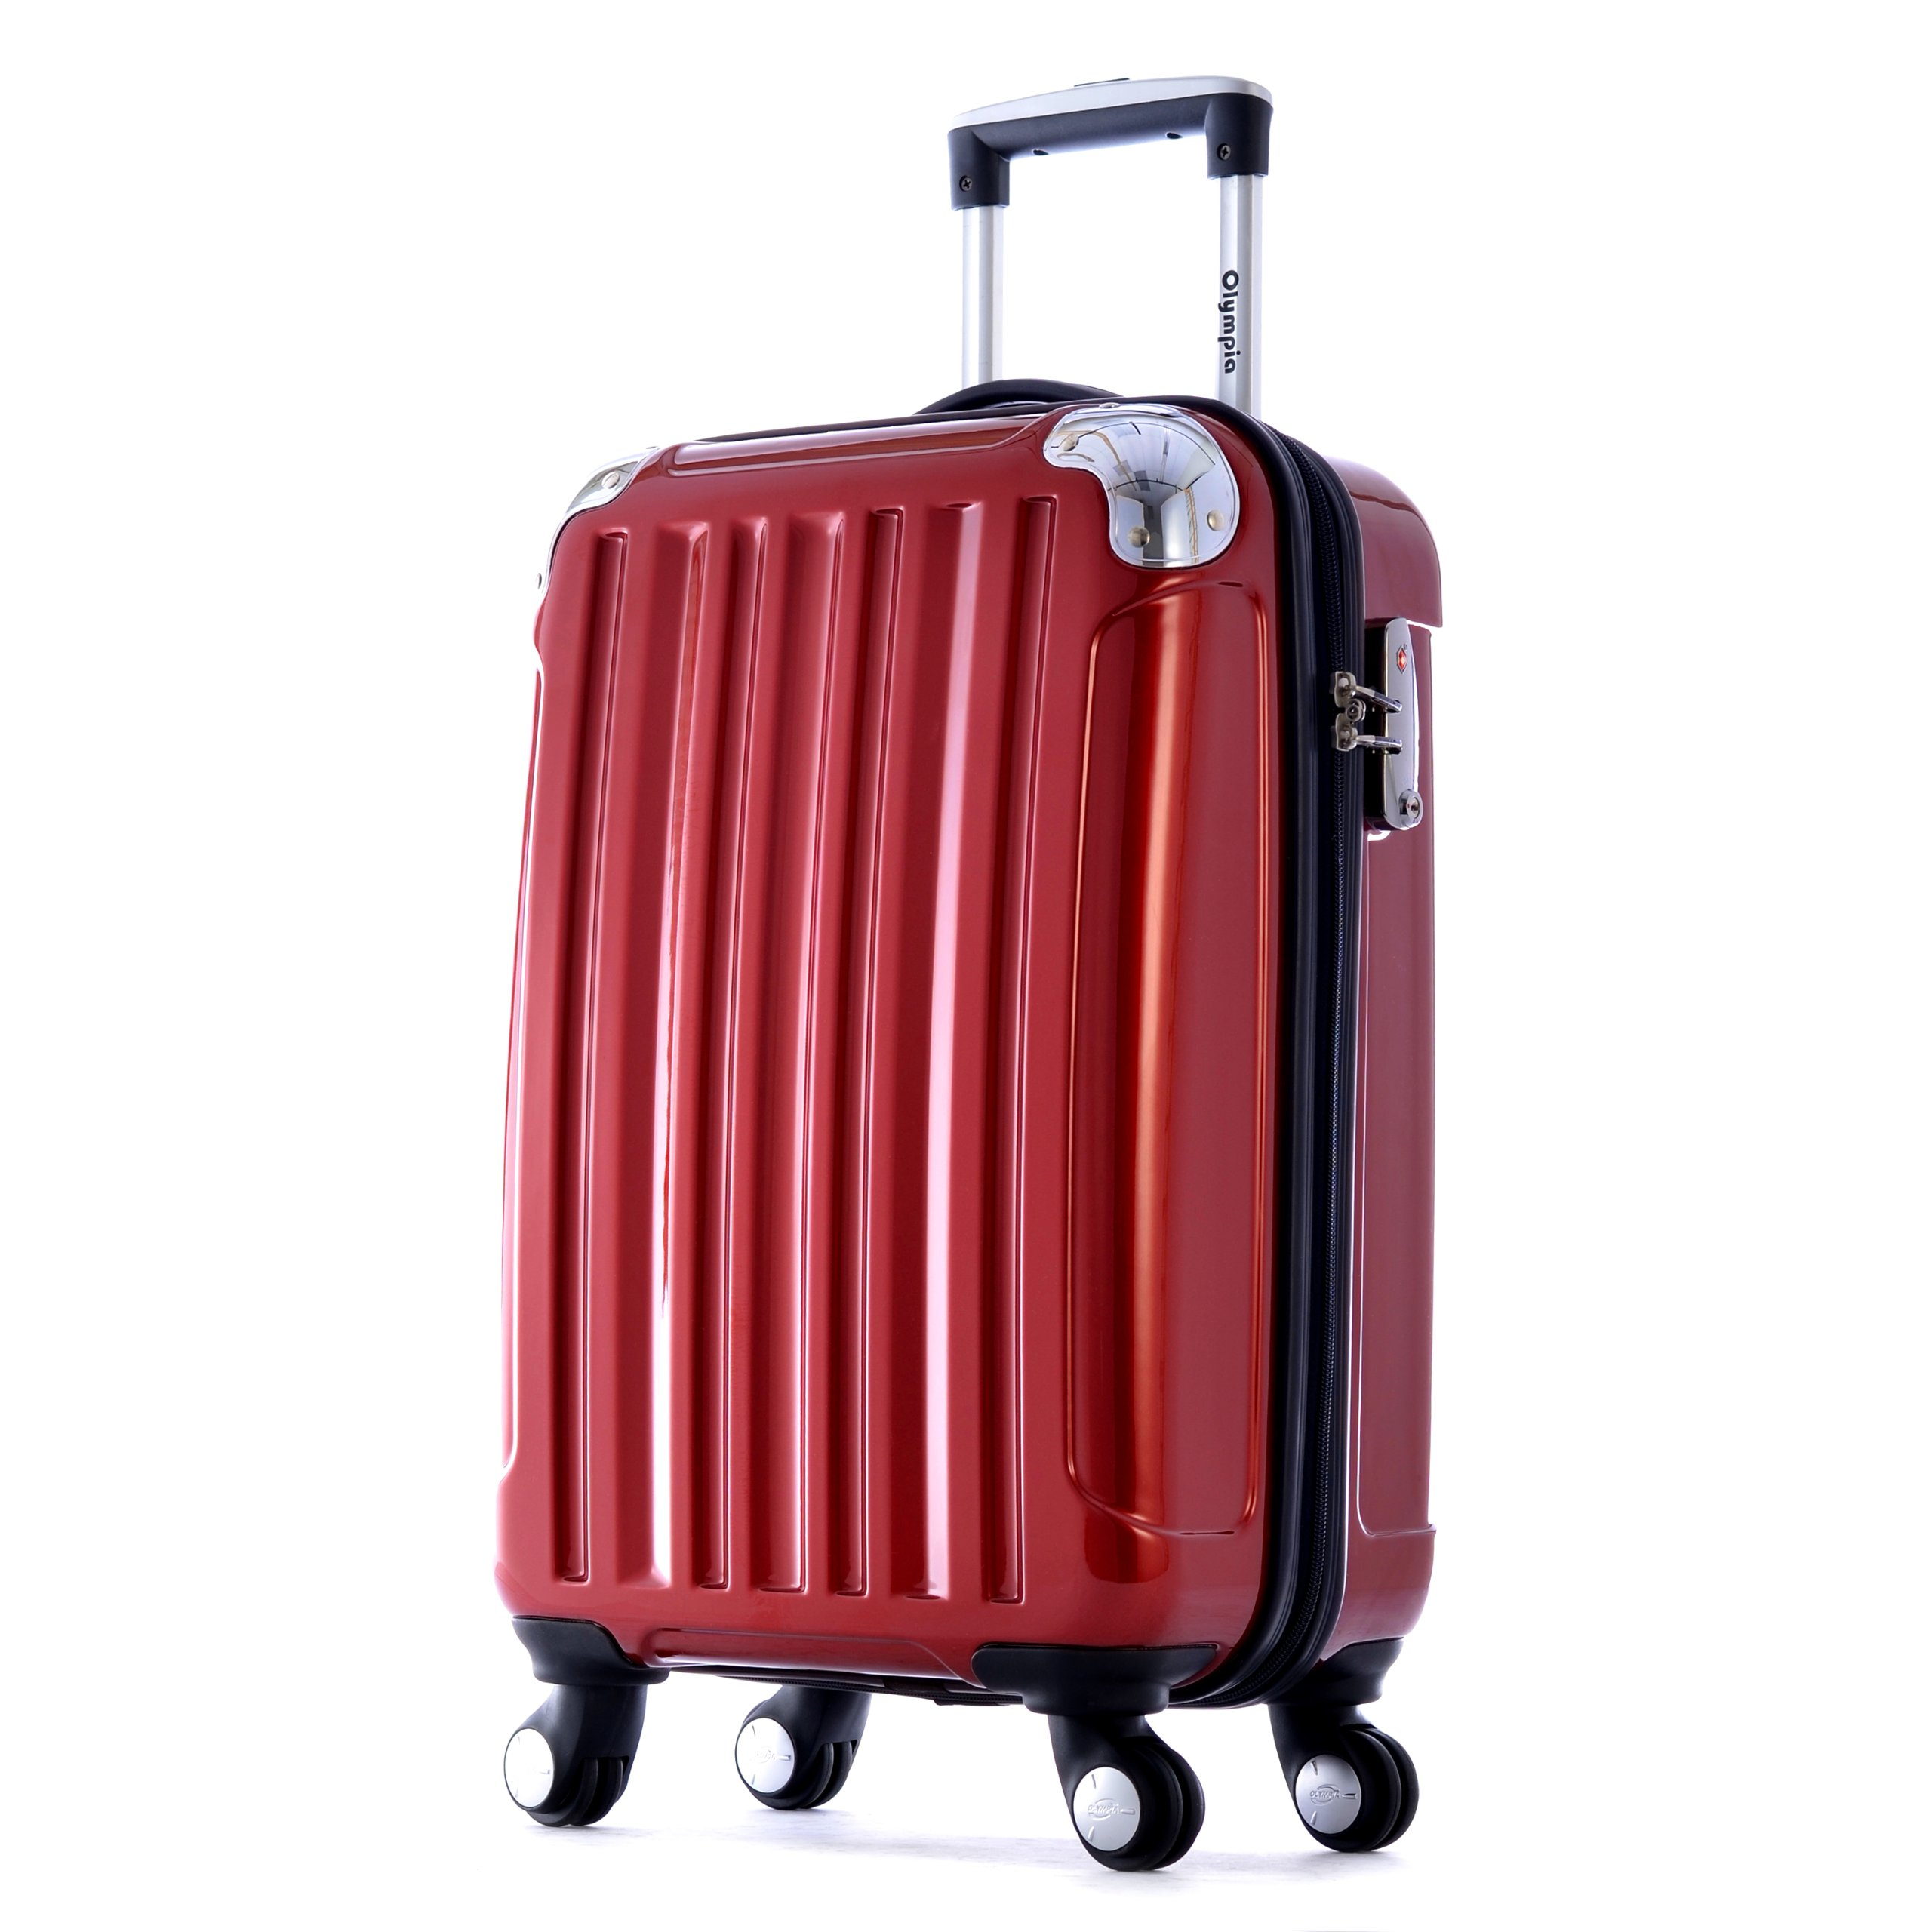 Olympia Whistler Hard Case Carry-On, Burgundy, One Size by Olympia